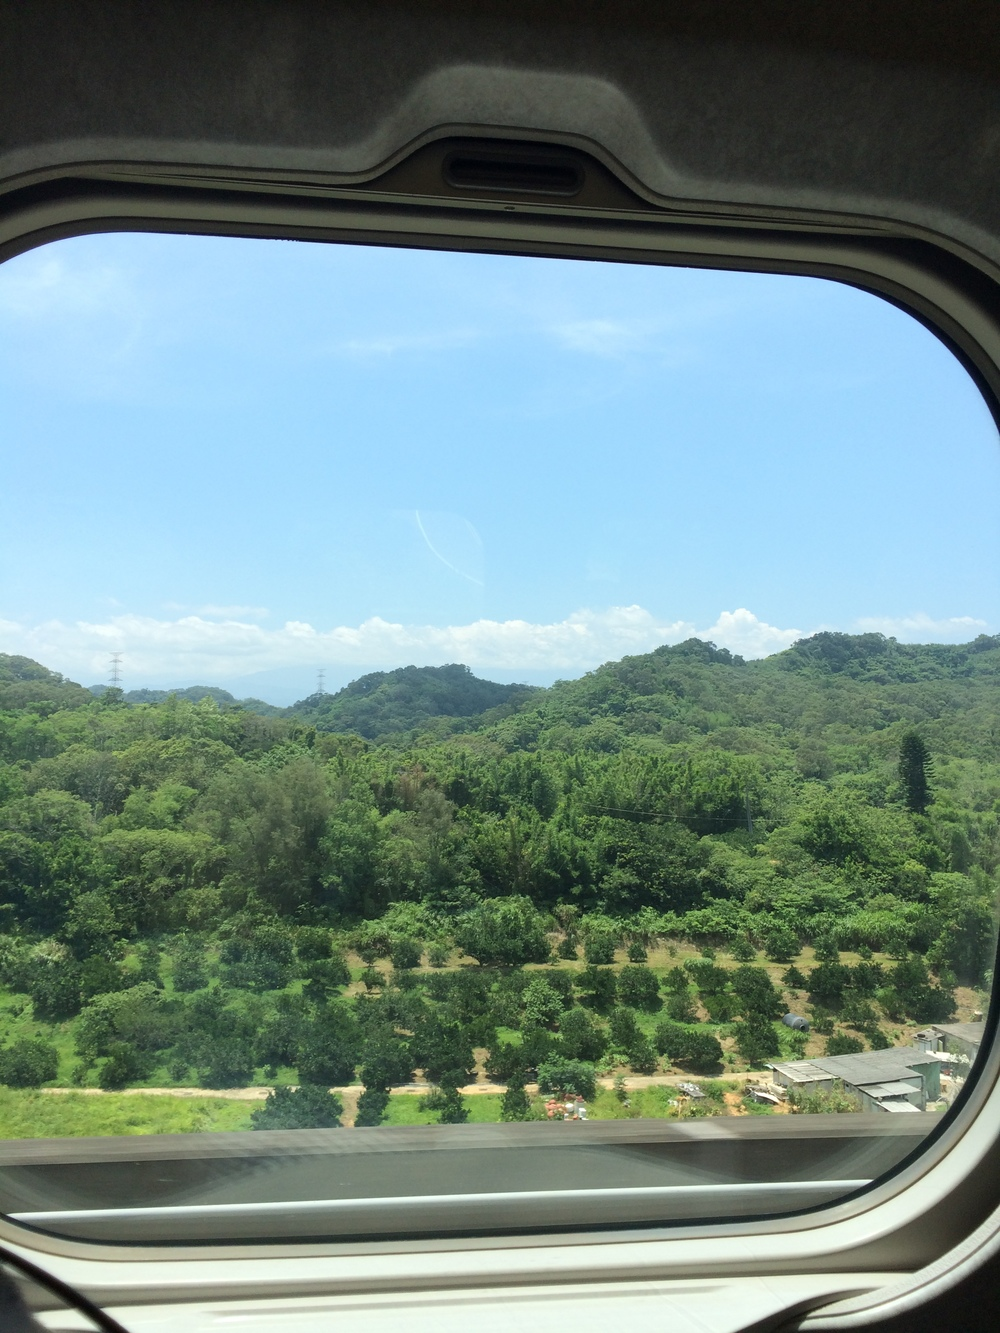 Here's the view from the bullet train. We by lots of greens.